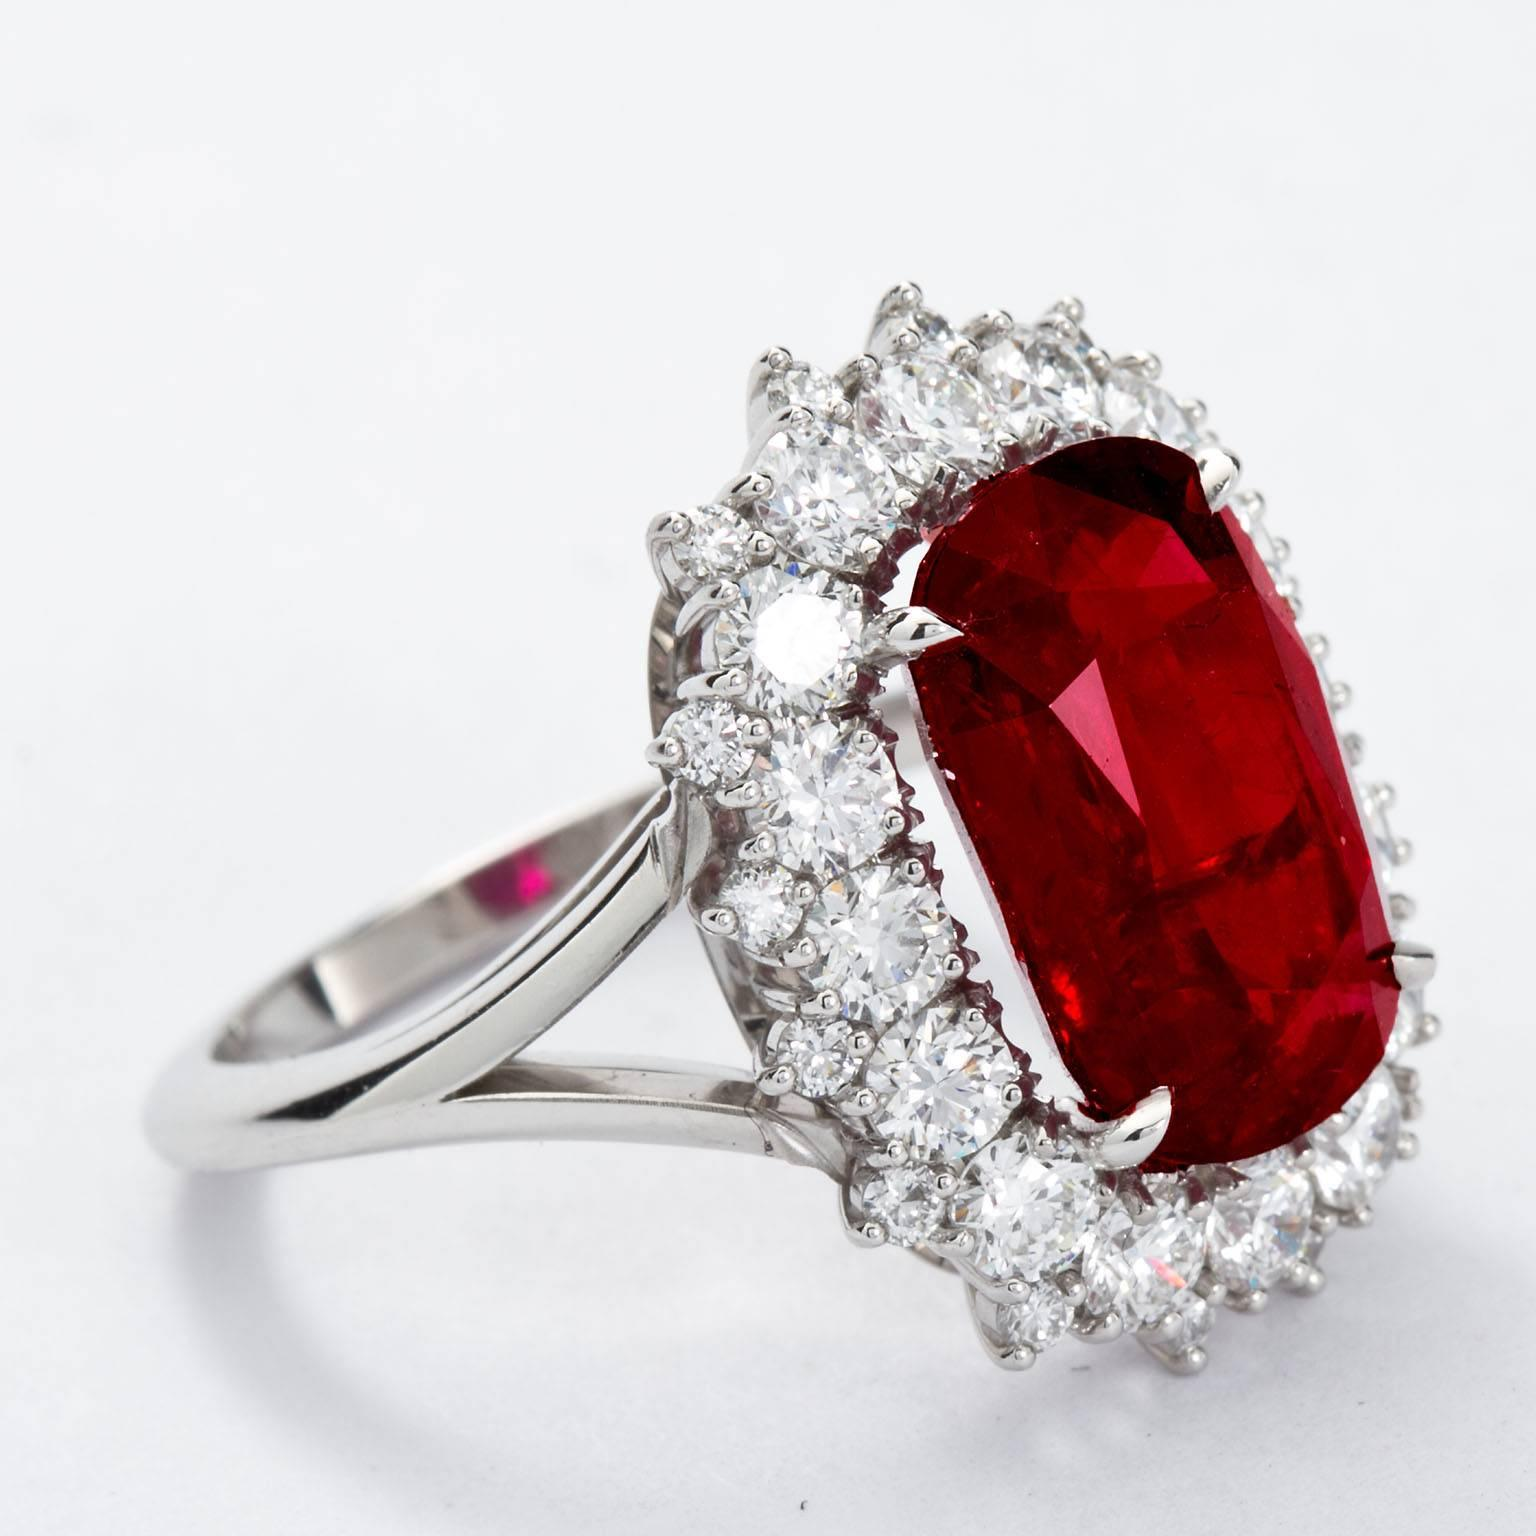 in ratnaraj ruby featured rings blood rare pigeon gemstones priced investment these auctions jewelry high ring diamond red